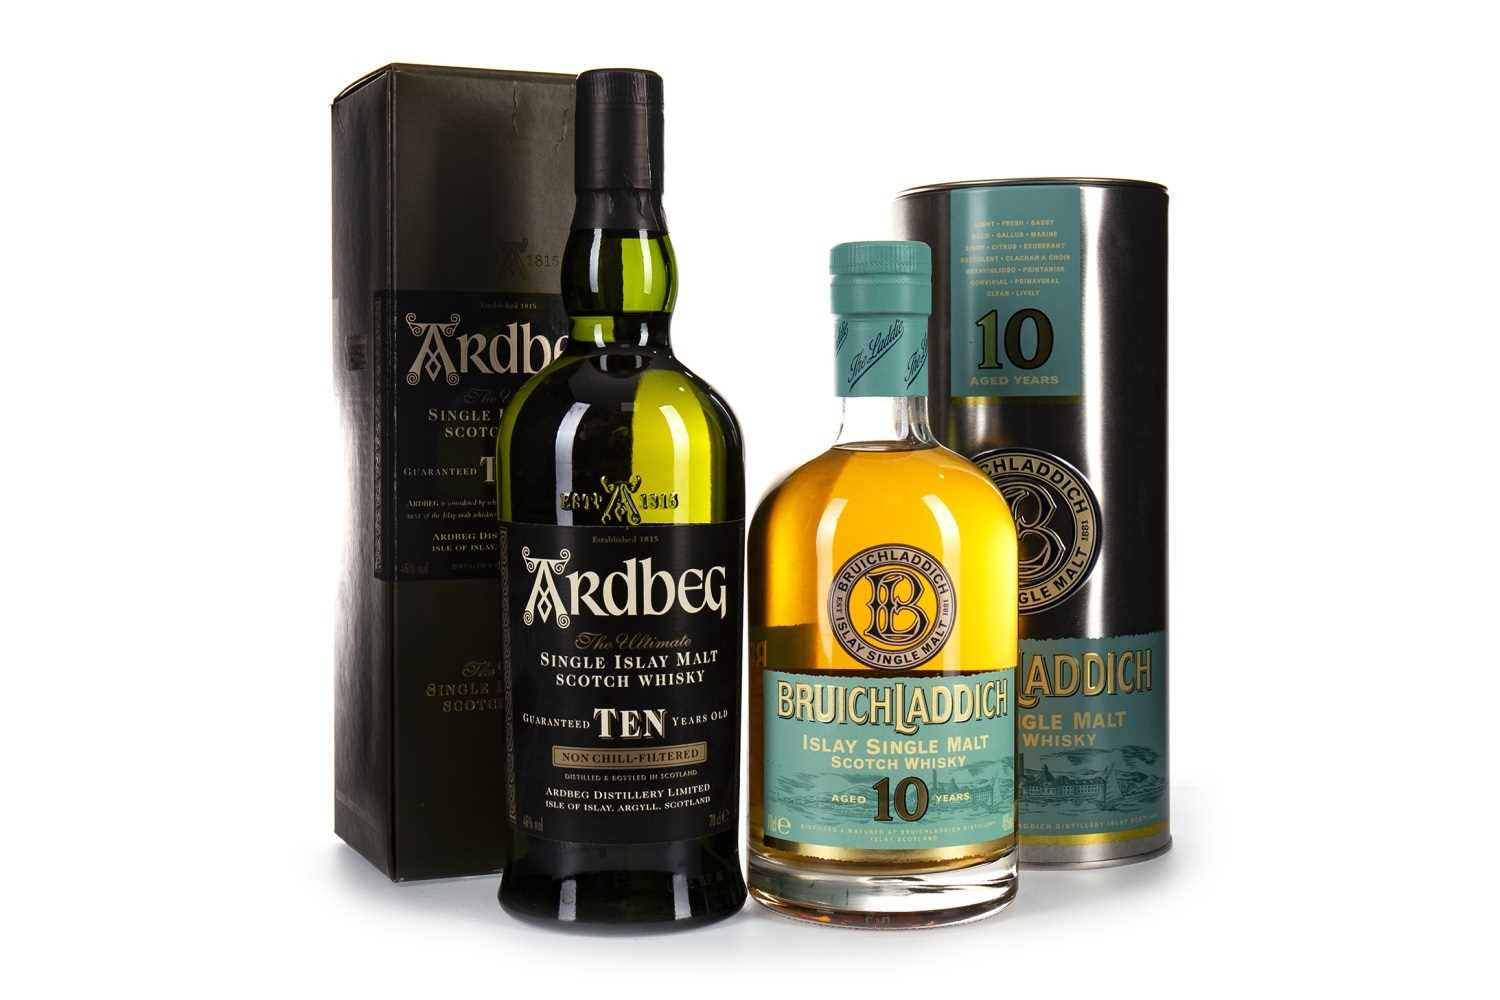 Lot 310-ARDBEG 10 YEARS OLD AND BRUICHLADDICH 10 YEARS OLD